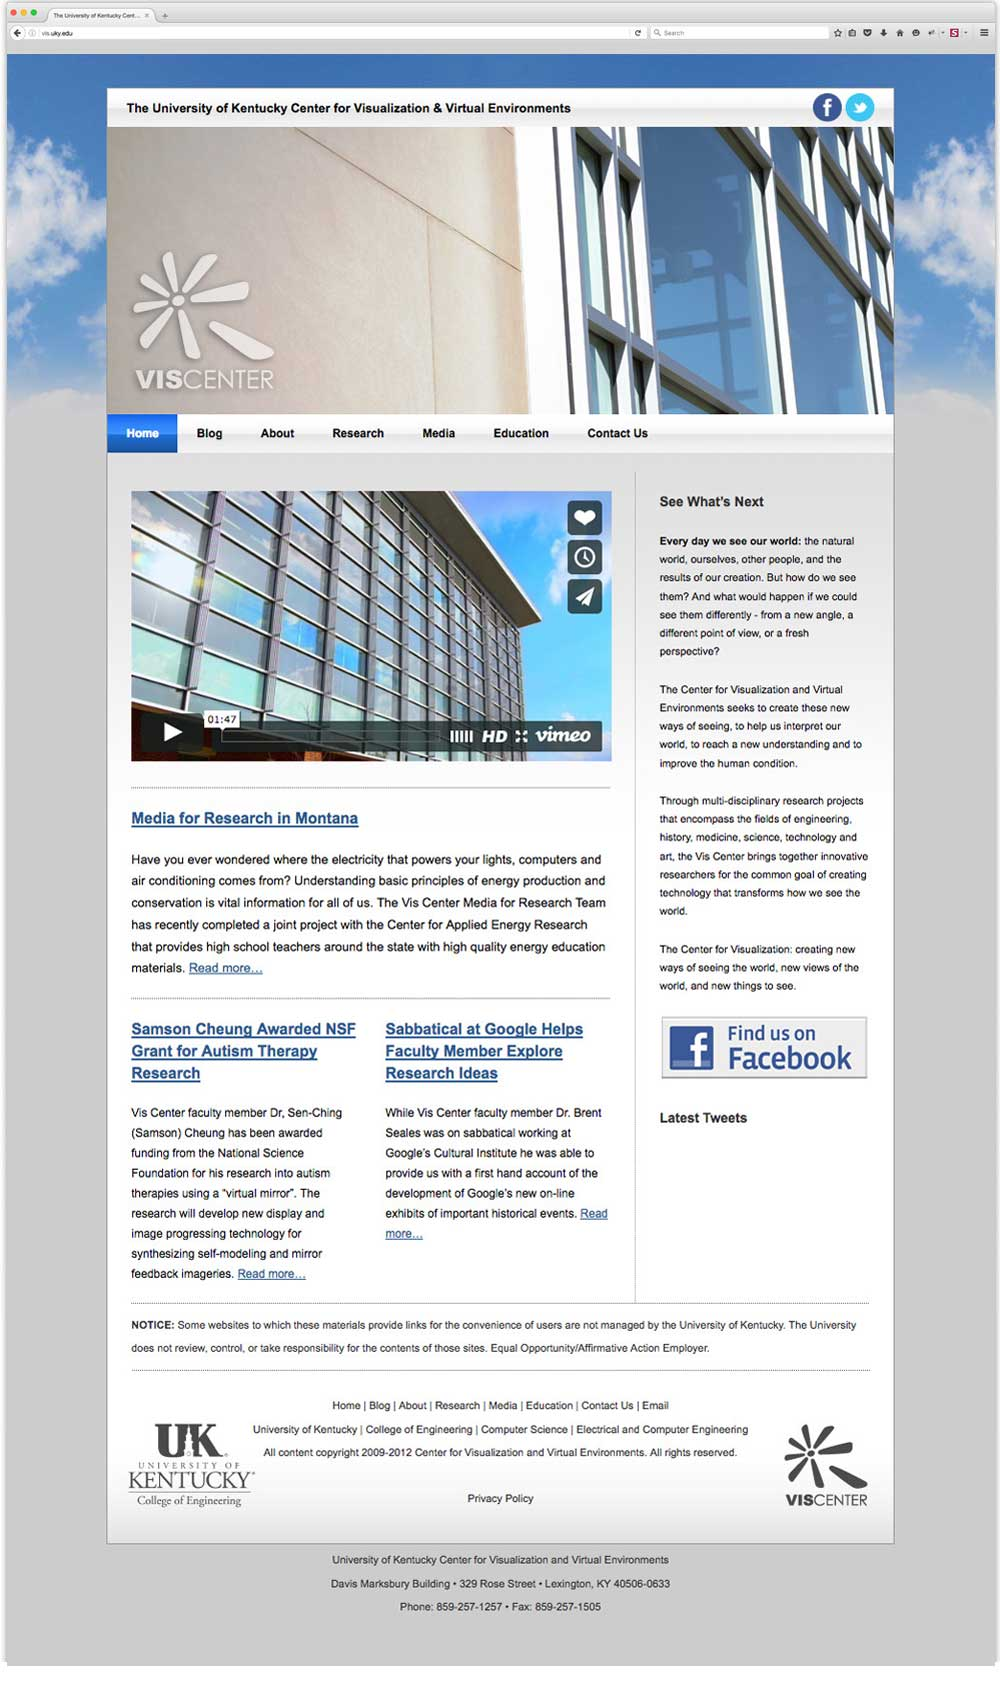 Benezet & Associates website